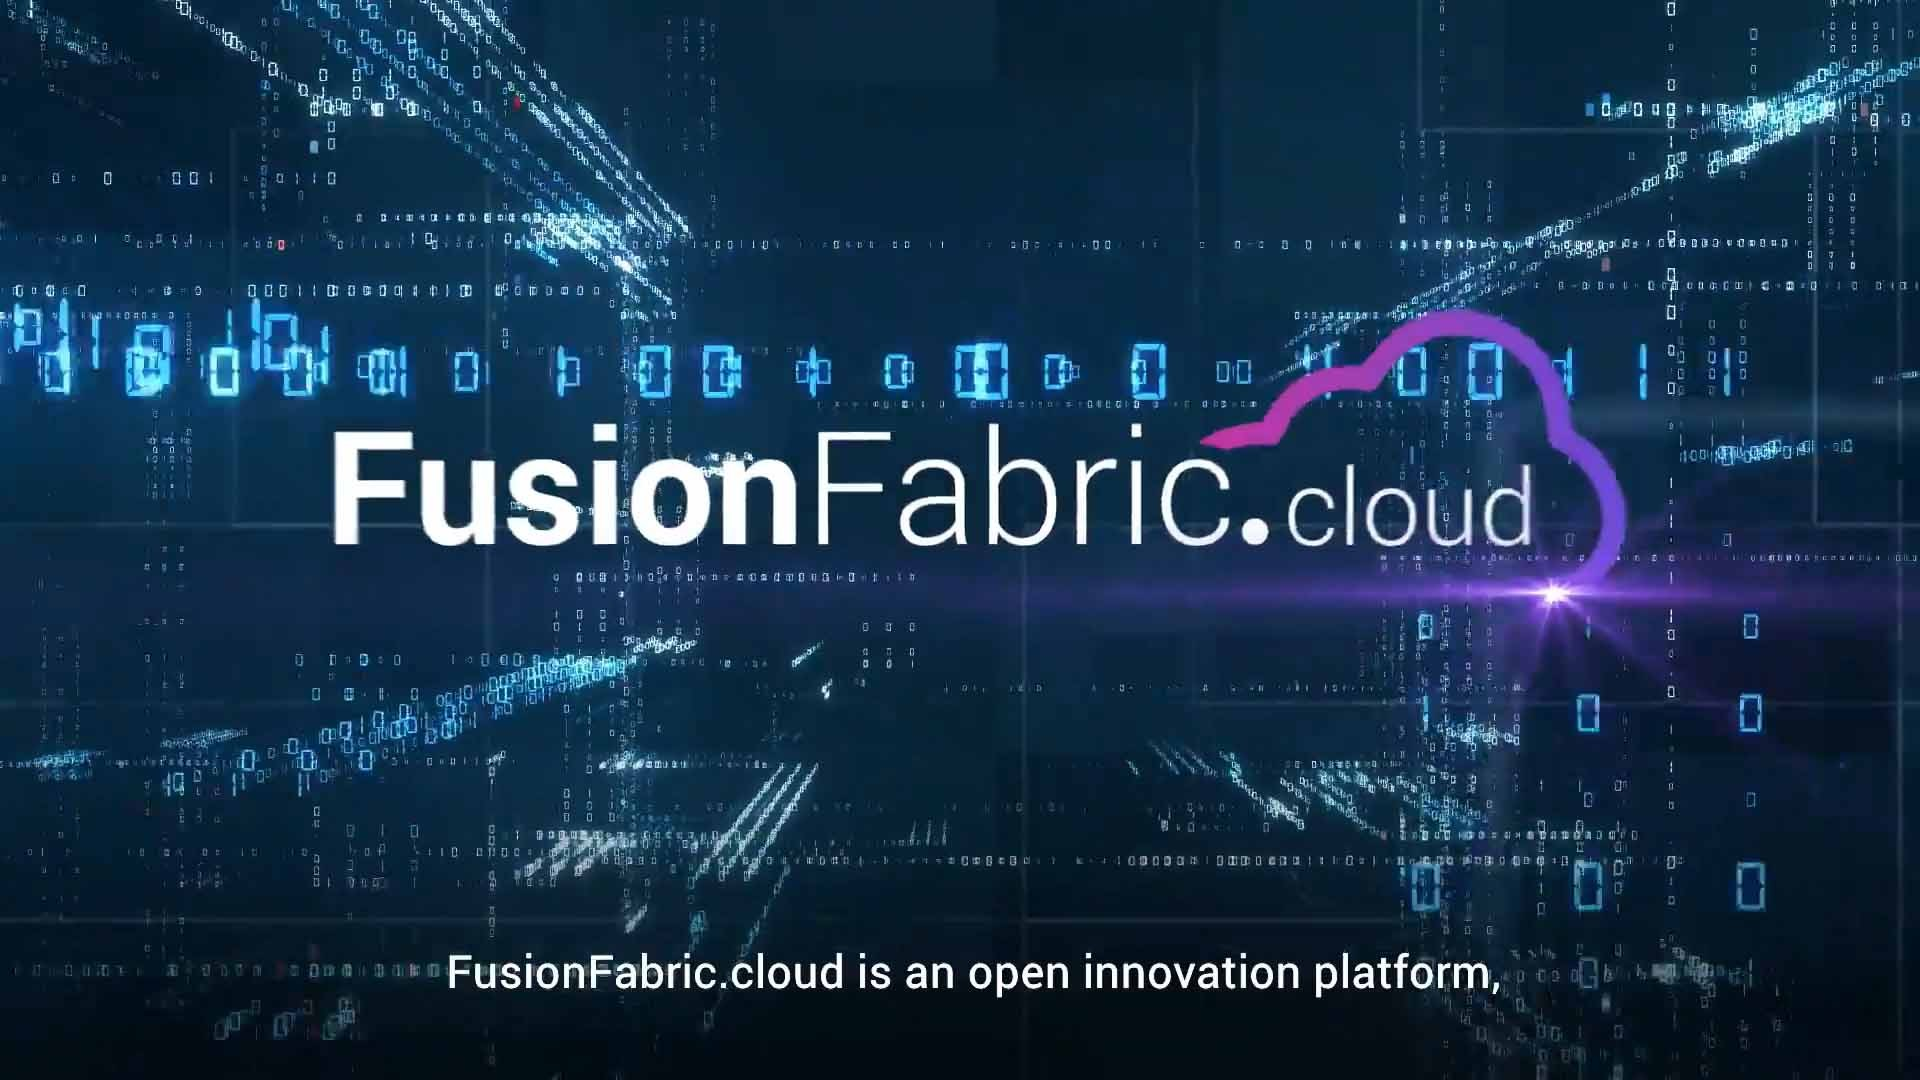 FusionFabric.cloud - Unlocking Innovation in Financial Services